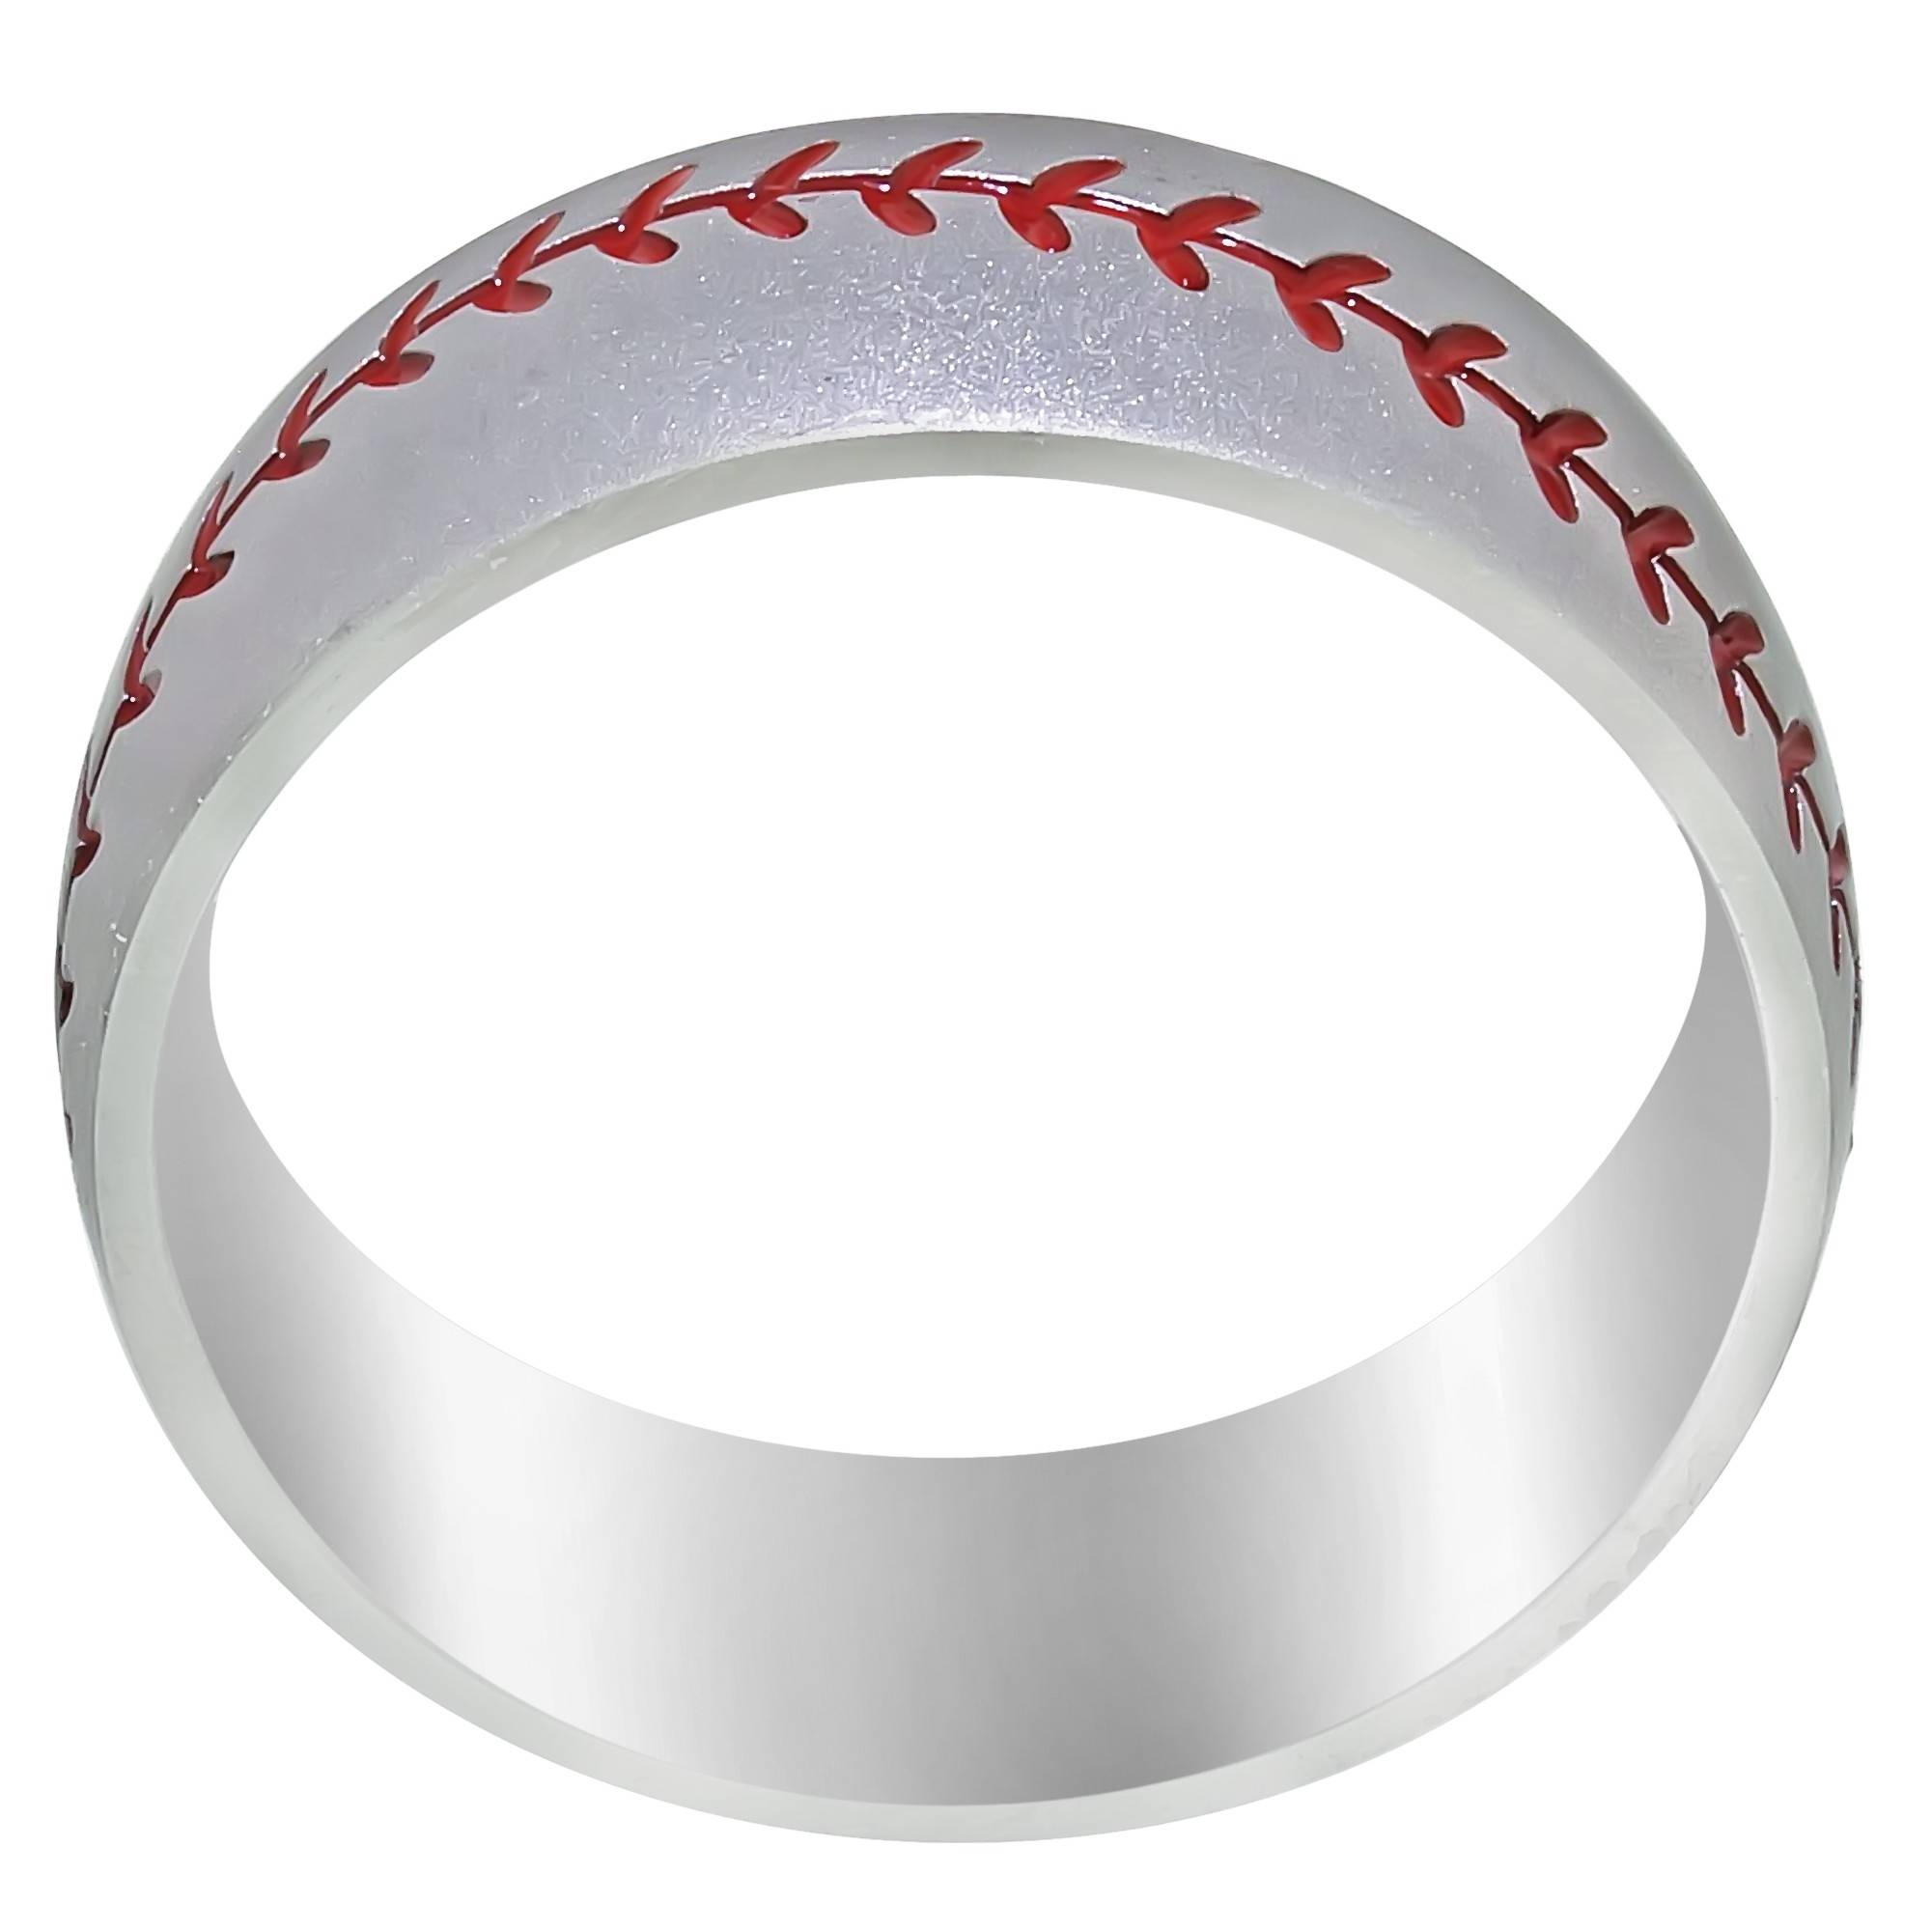 Mens Baseball Wedding Band In Cobalt Chrome (8mm) Intended For Mens Baseball Wedding Bands (View 4 of 15)